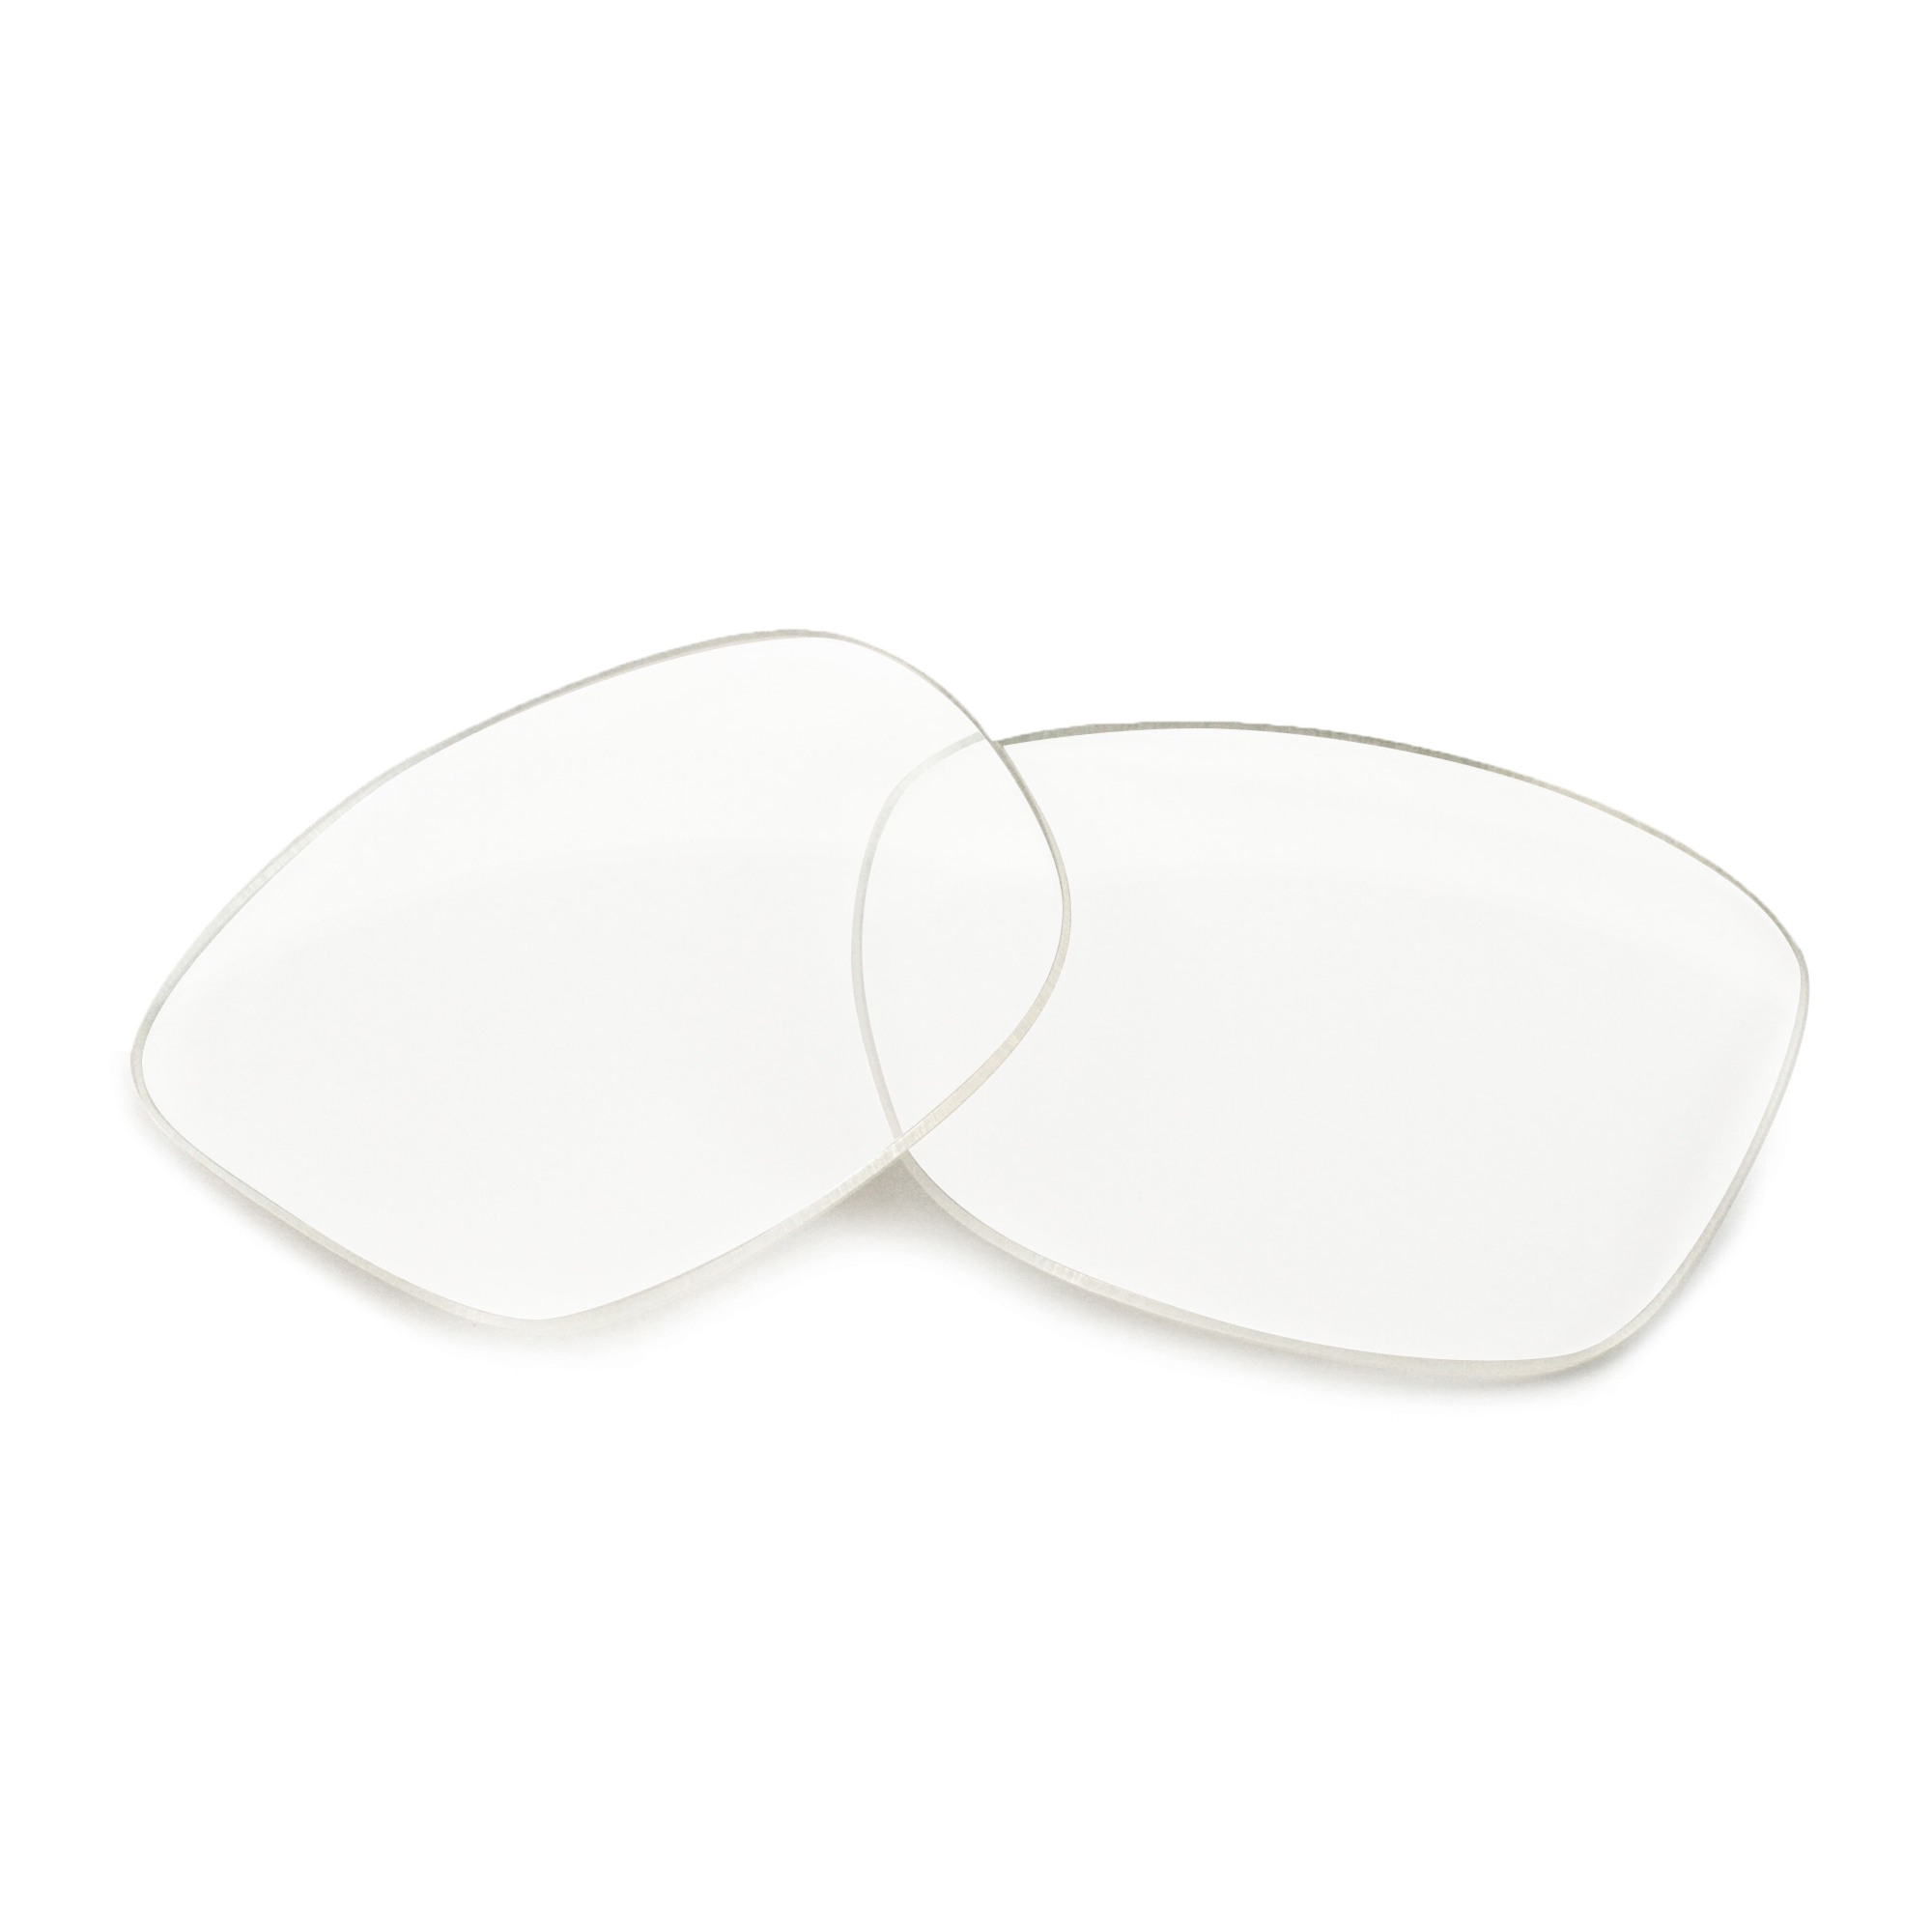 Fuse Lenses for Chanel 5102 - Crystal Clear